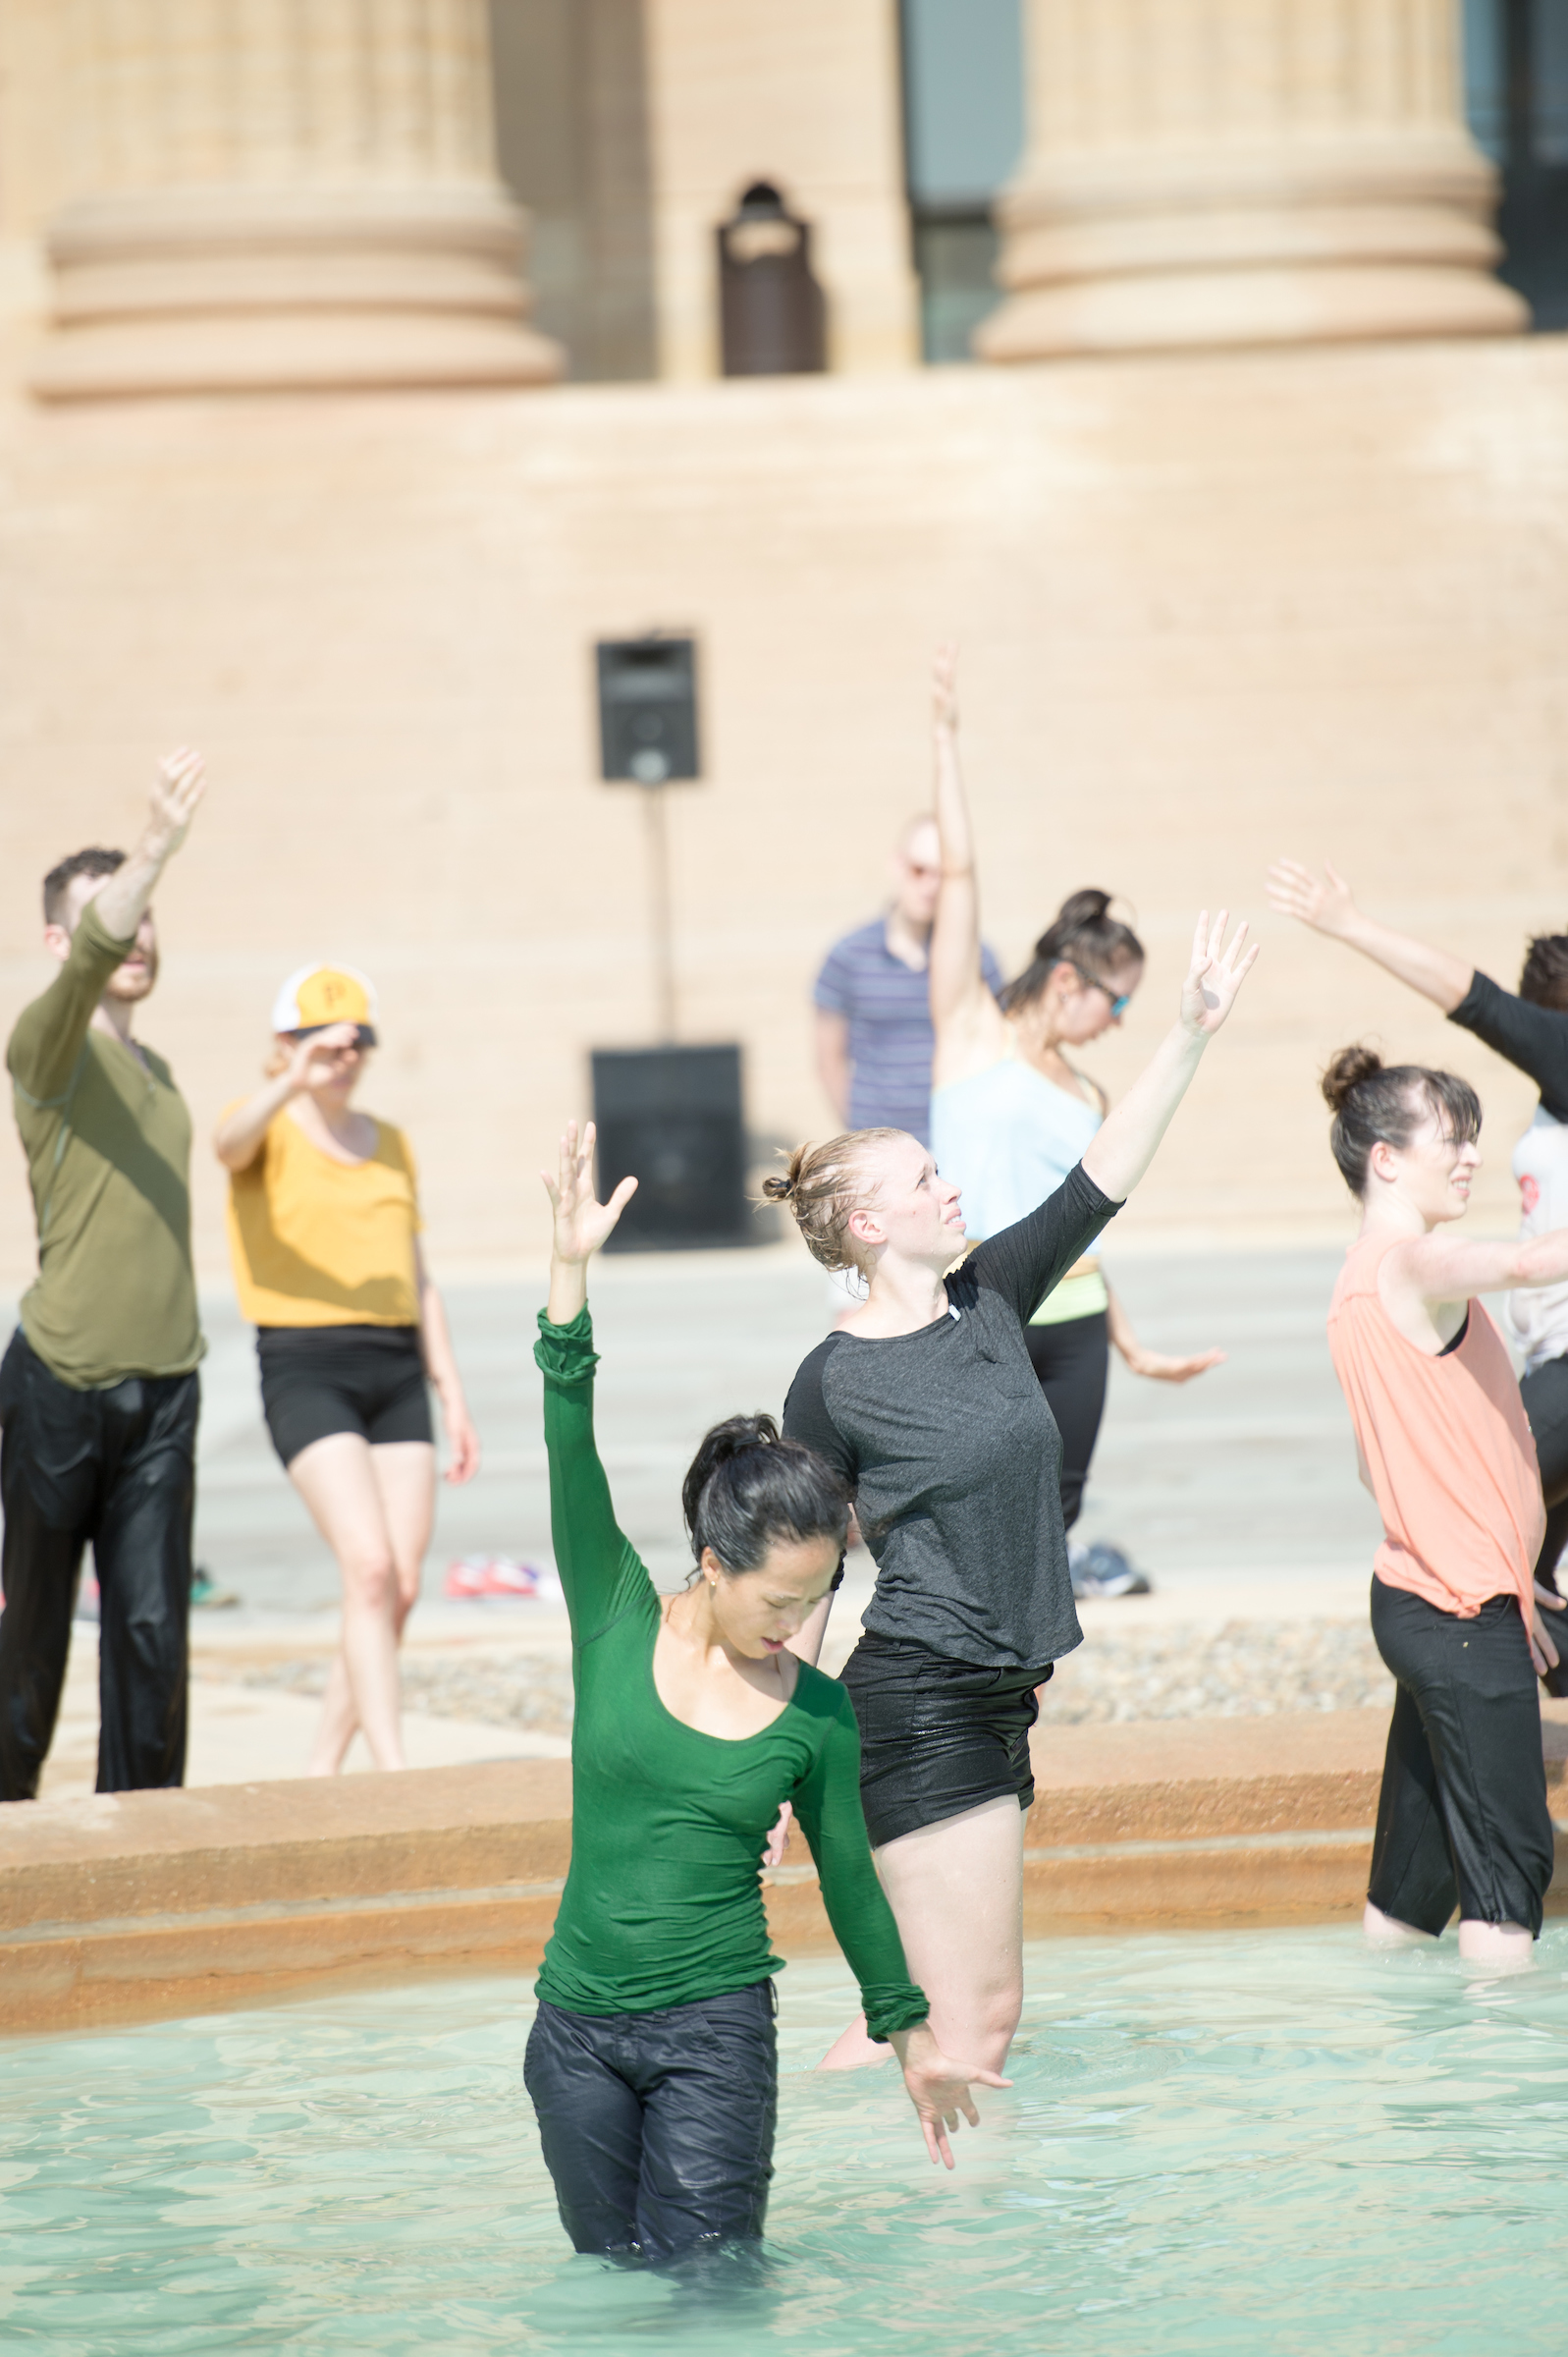 Philadelphia community and professional dancers performing Charmatz' Levée des conflits at the Philadelphia Museum of Art, September 2016. Photo Credit: JJ Tiziou Photography